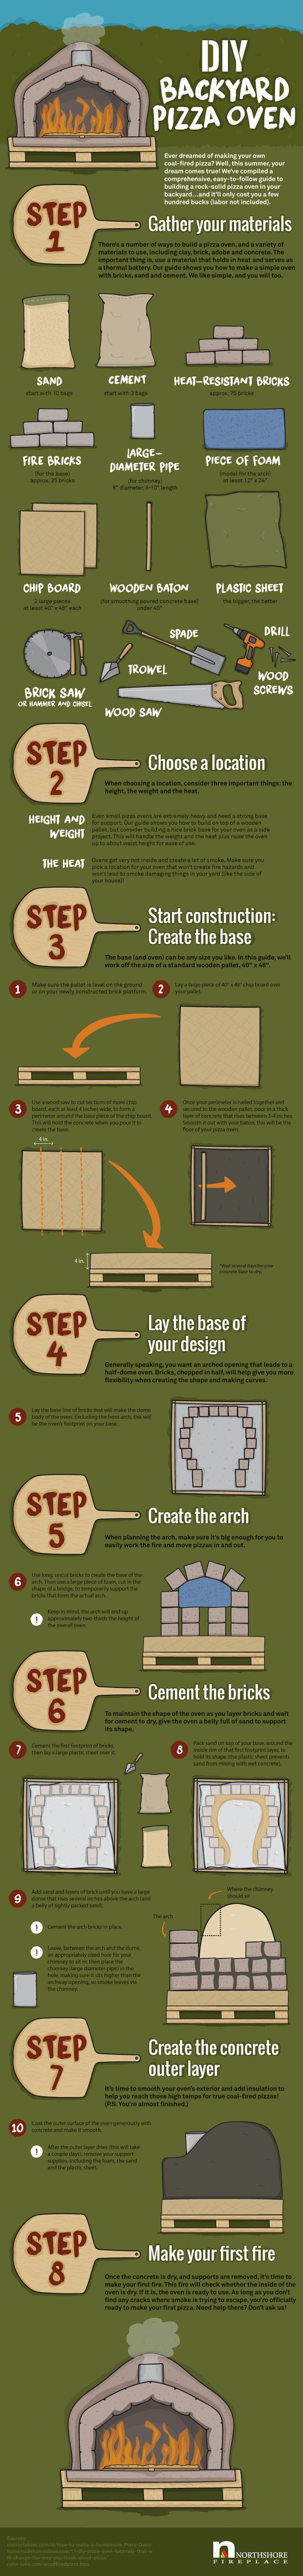 DIY pizza oven infographic